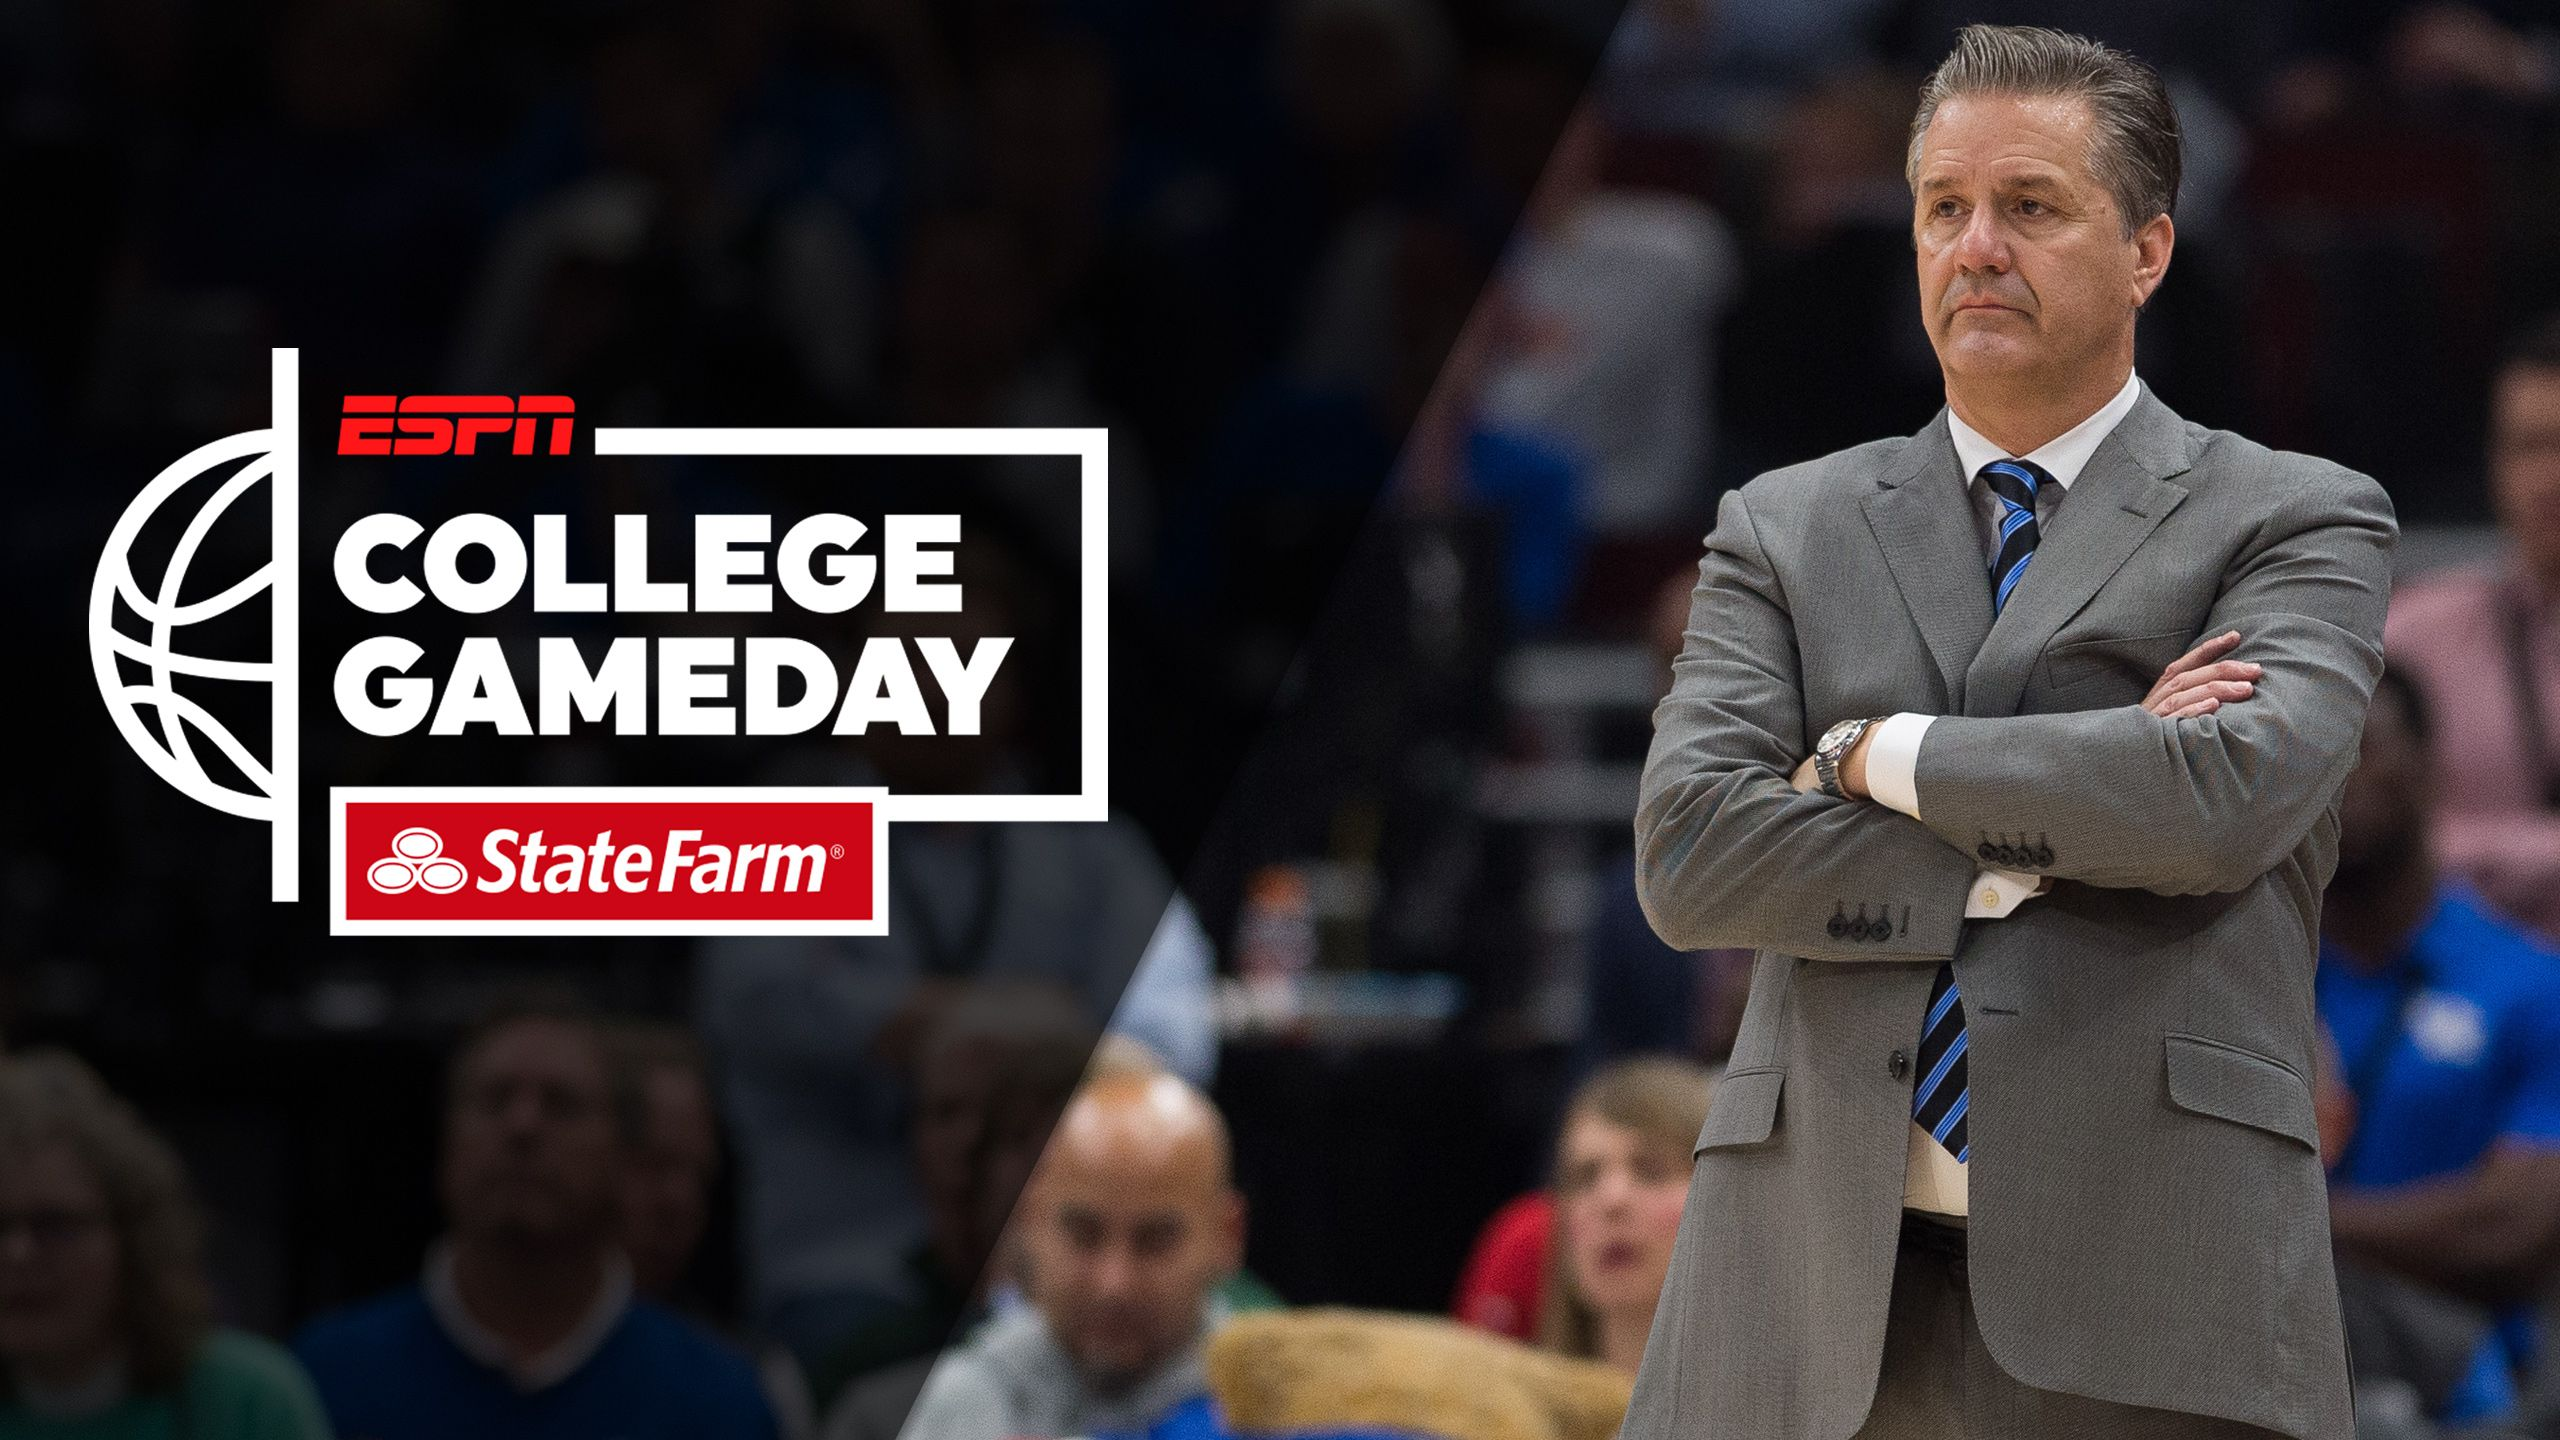 Sat, 1/20 - College GameDay Covered by State Farm